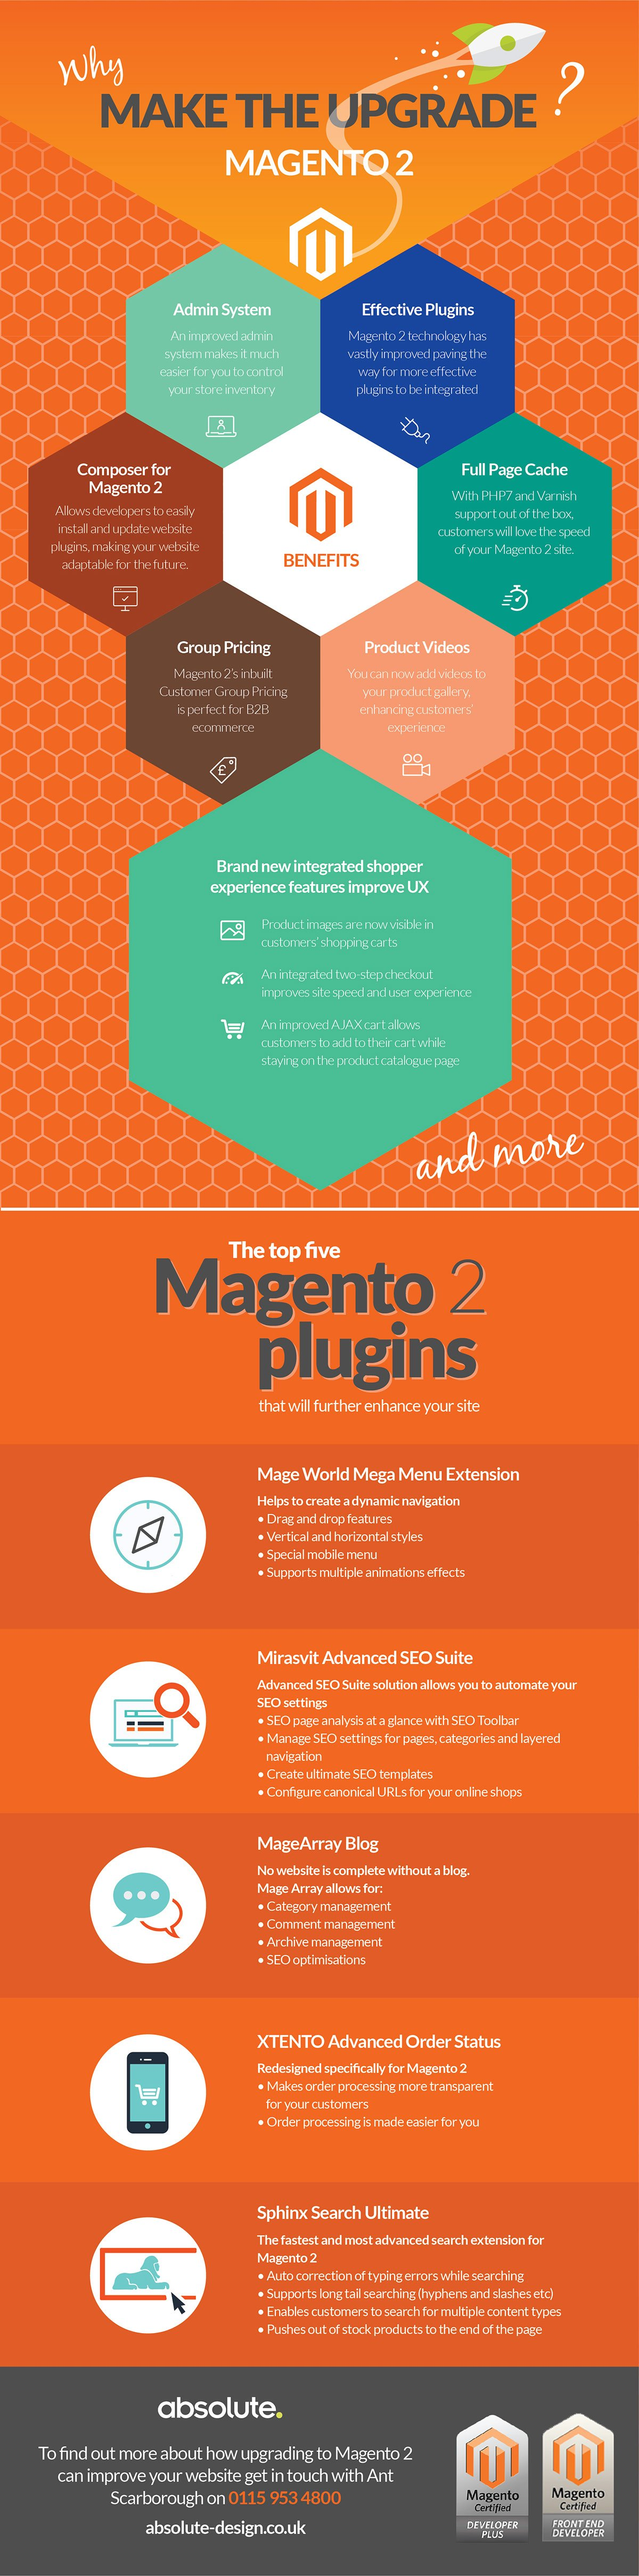 Magento 2 brings with it a whole host of new features. Could your site benefit from an upgrade?